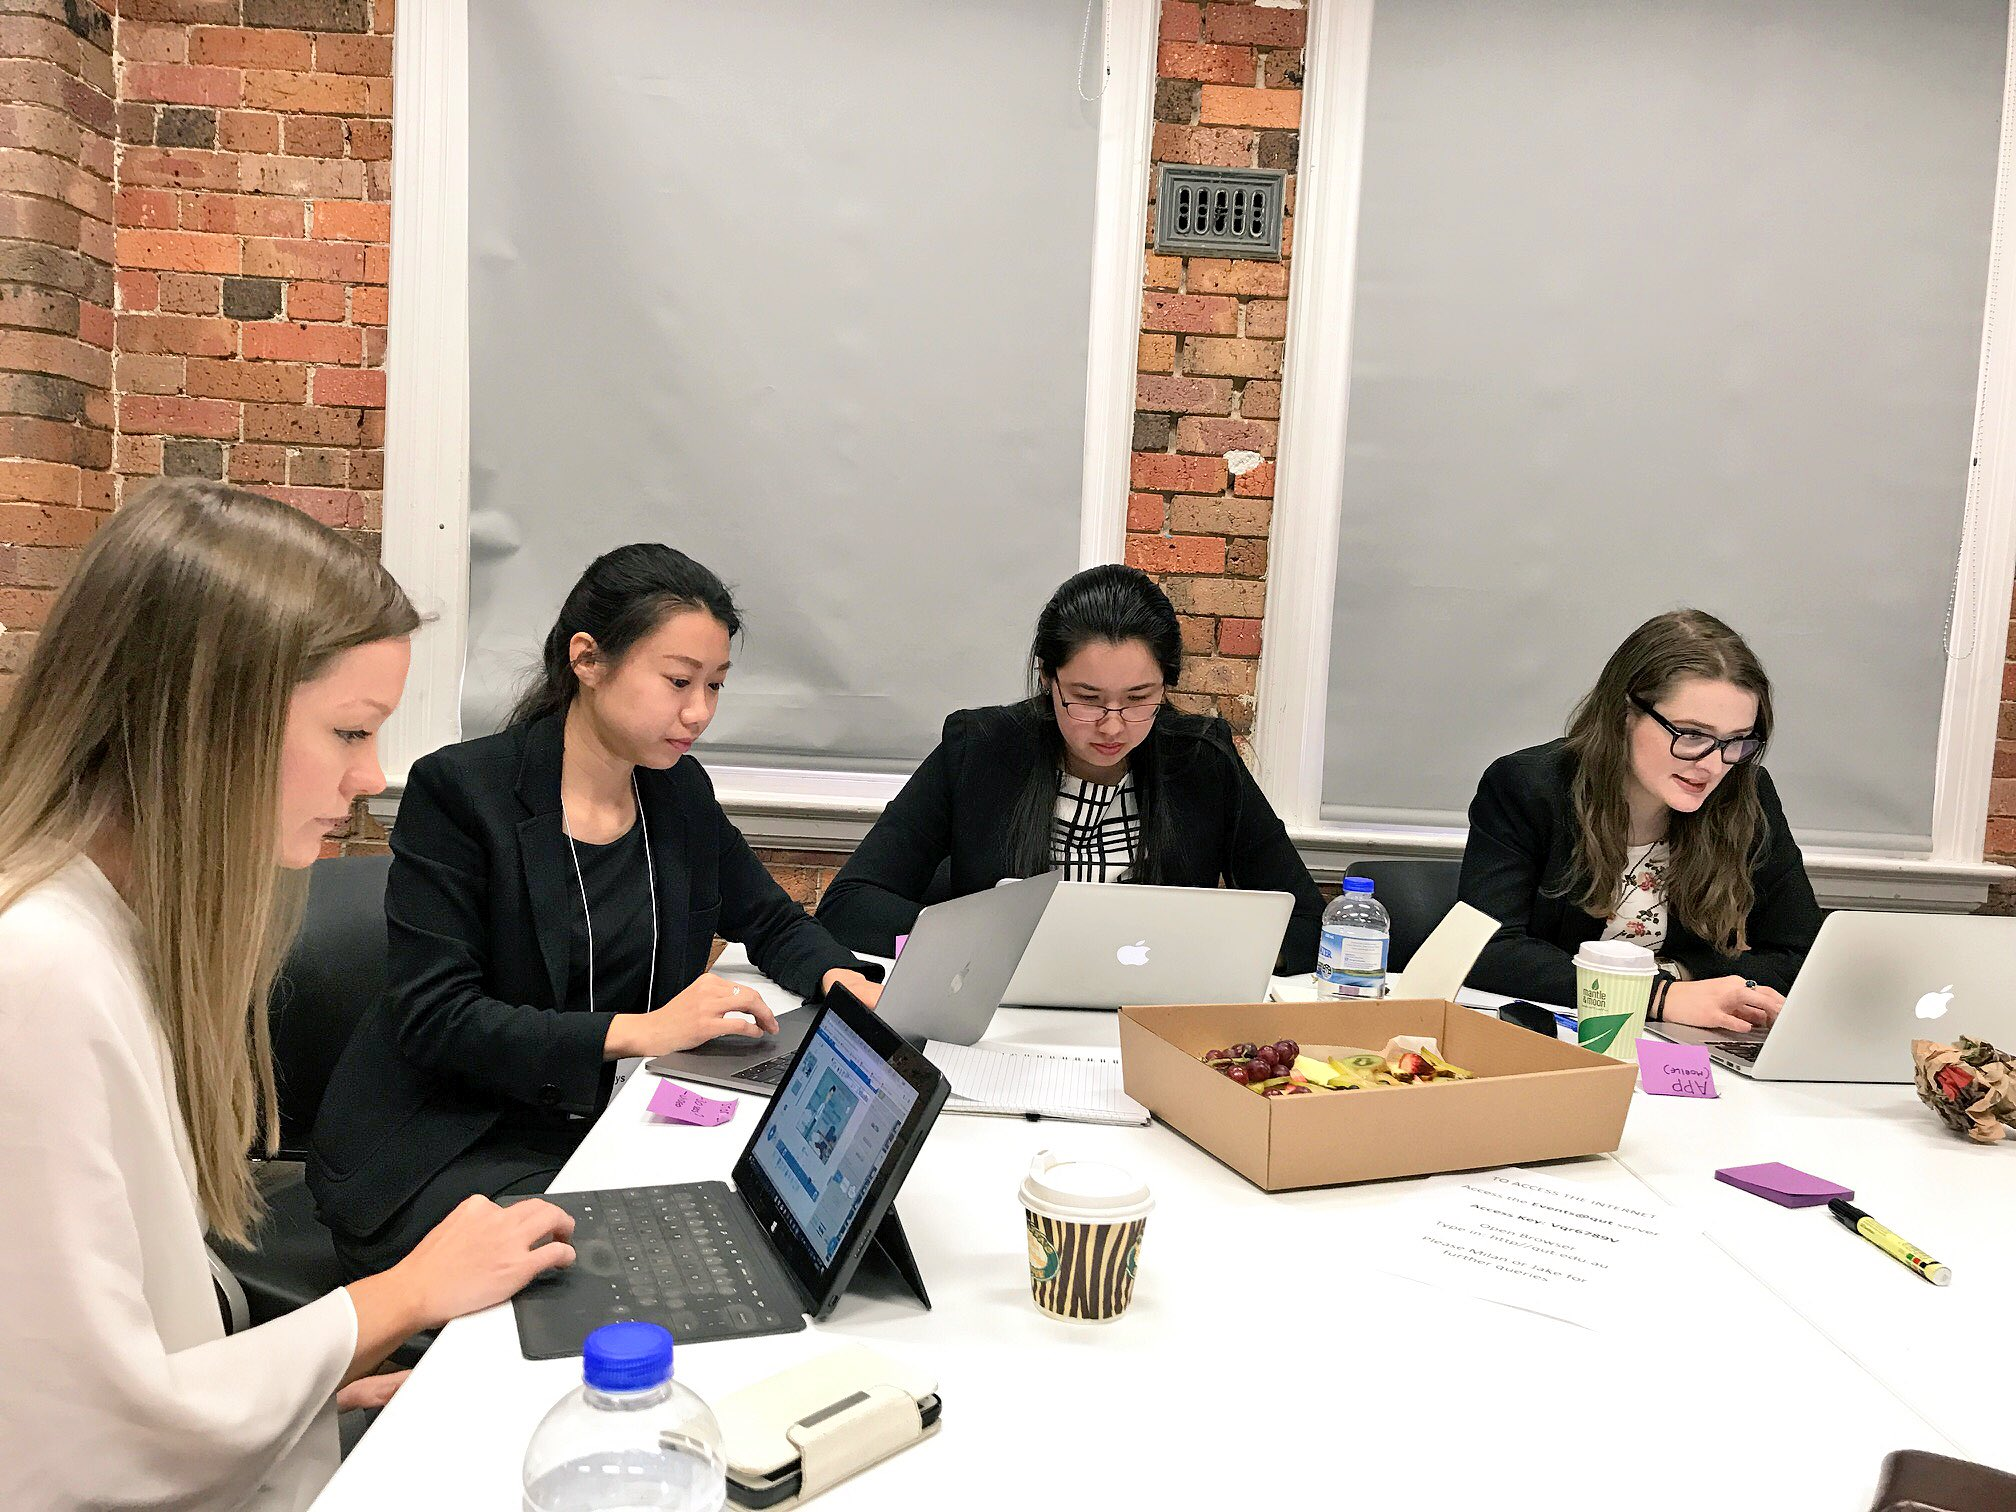 "Crunch time! Doug, our lawyer on the ground says: ""the mood is tense but the hacking is real."" #auslaw #hackathon #DisruptingLaw #legaltech https://t.co/pT05sBclSu"